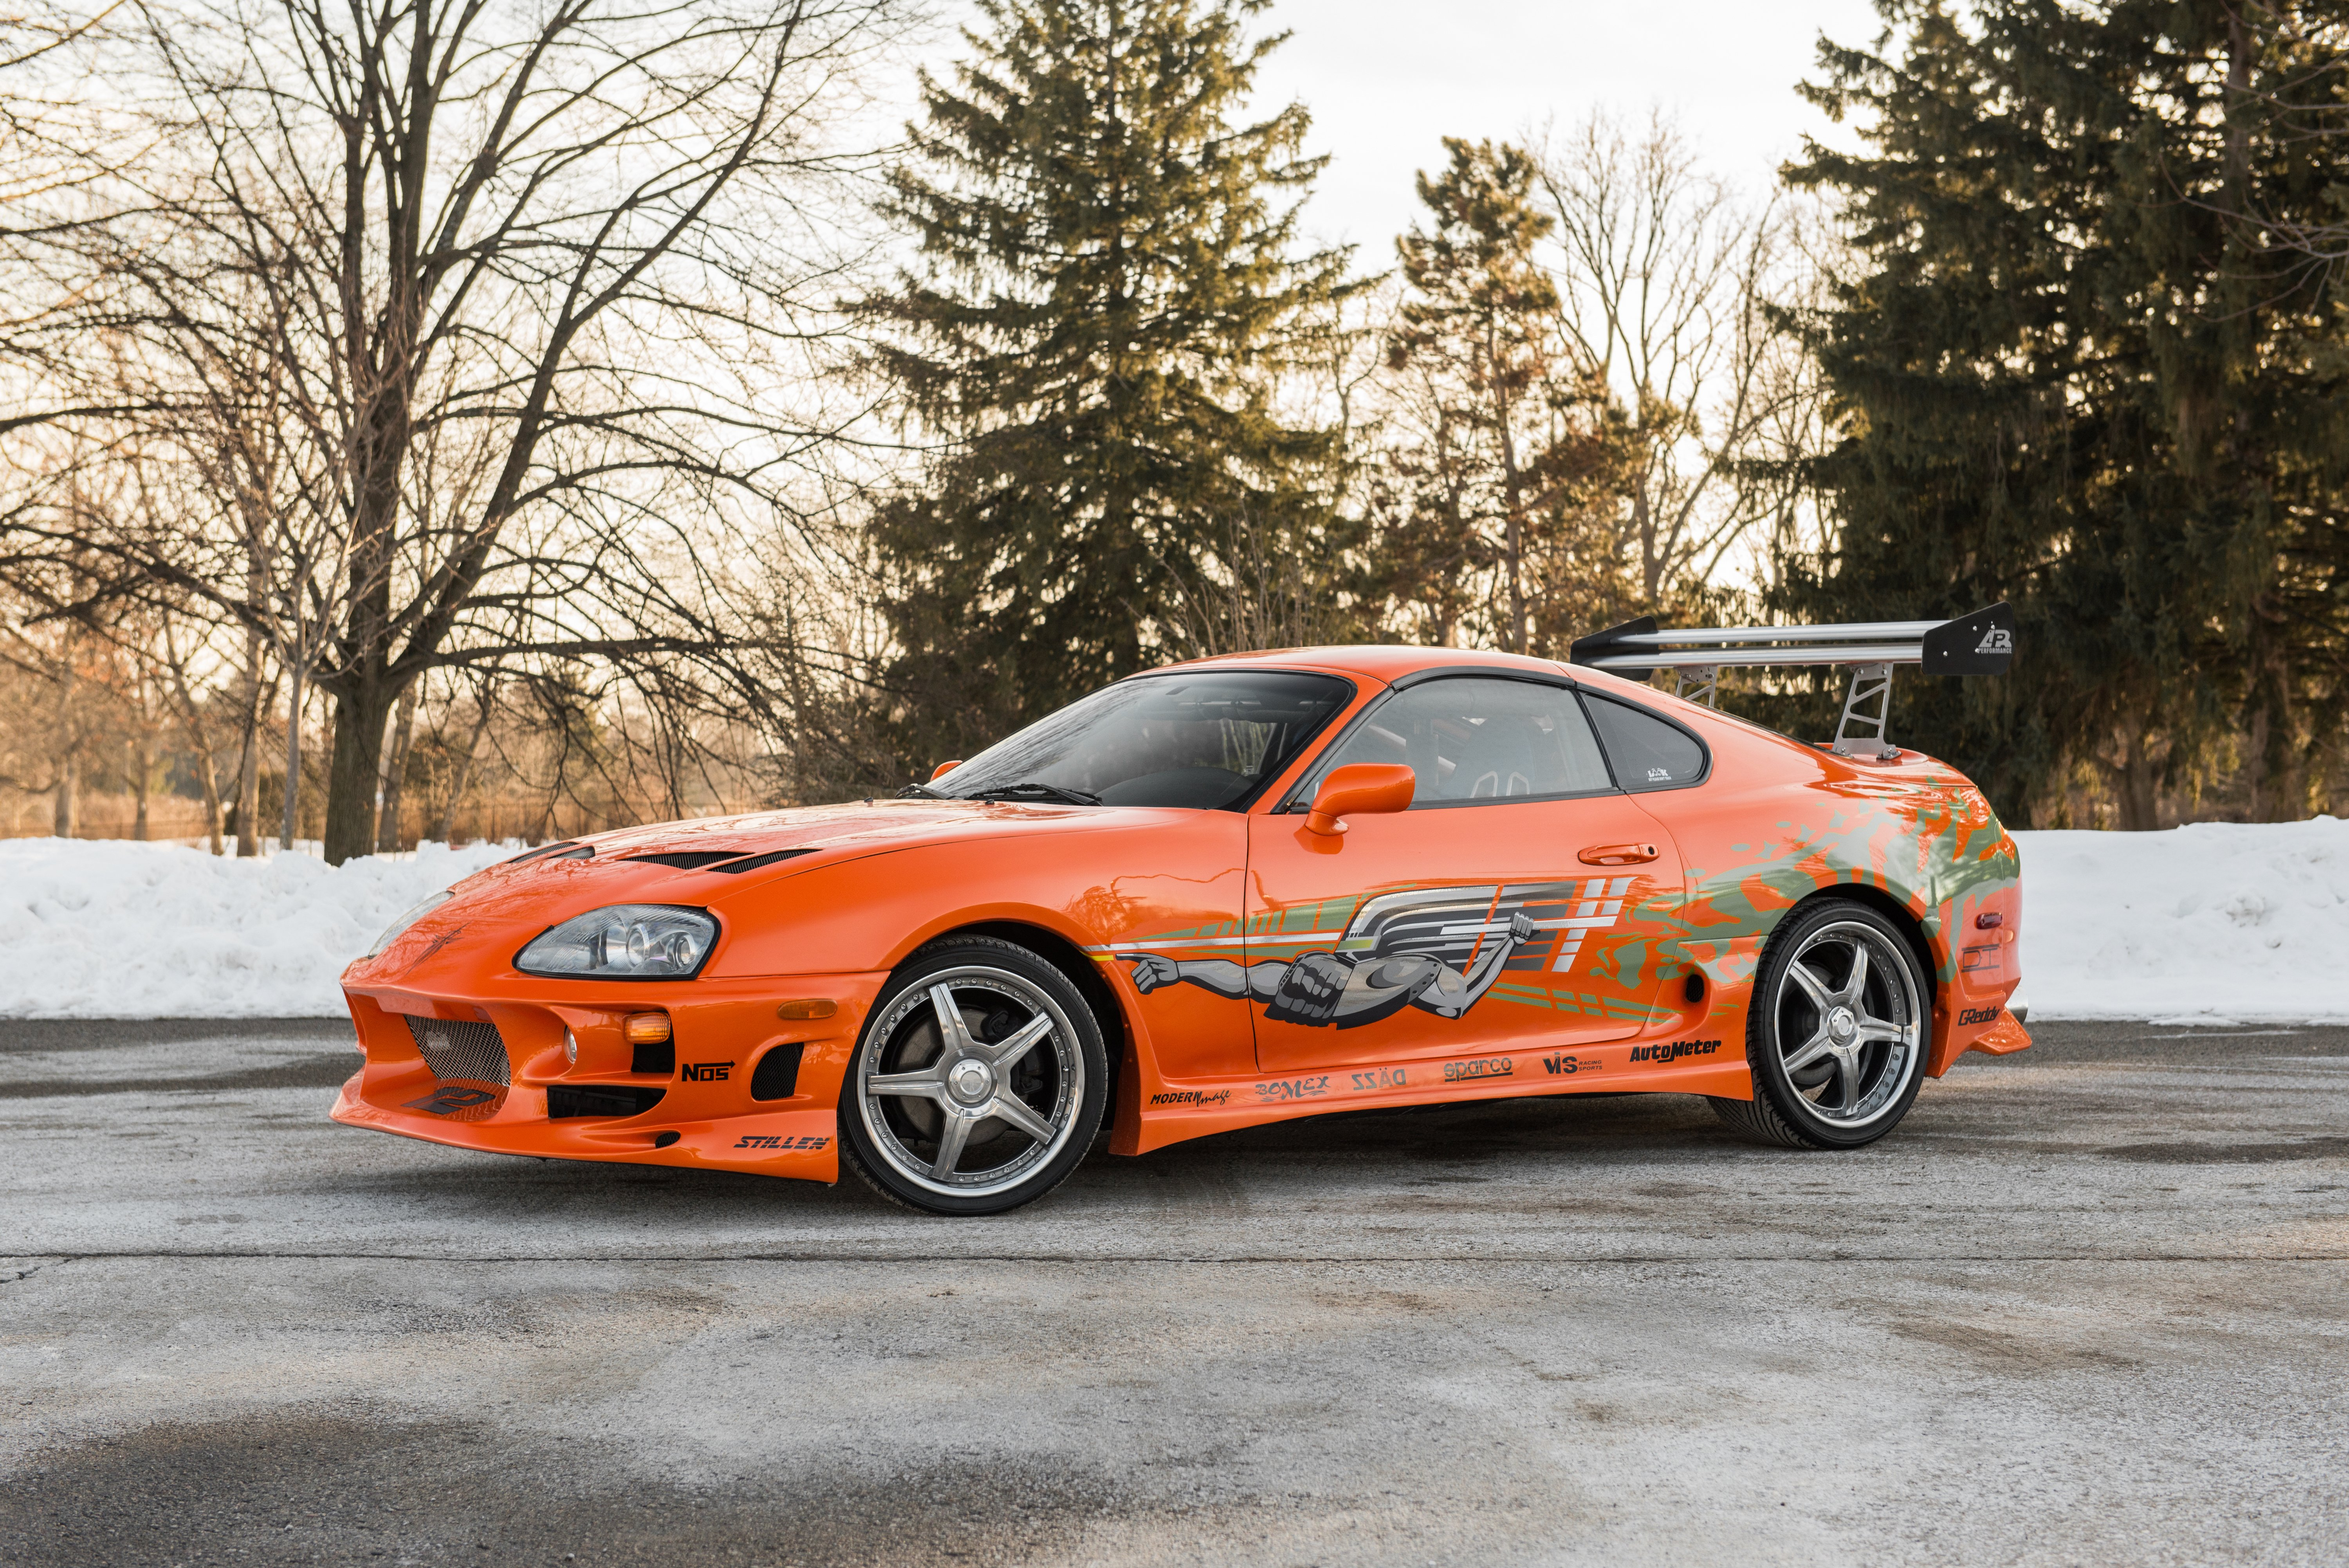 Toyota Supra The Fast and the Furious - 4107.7KB